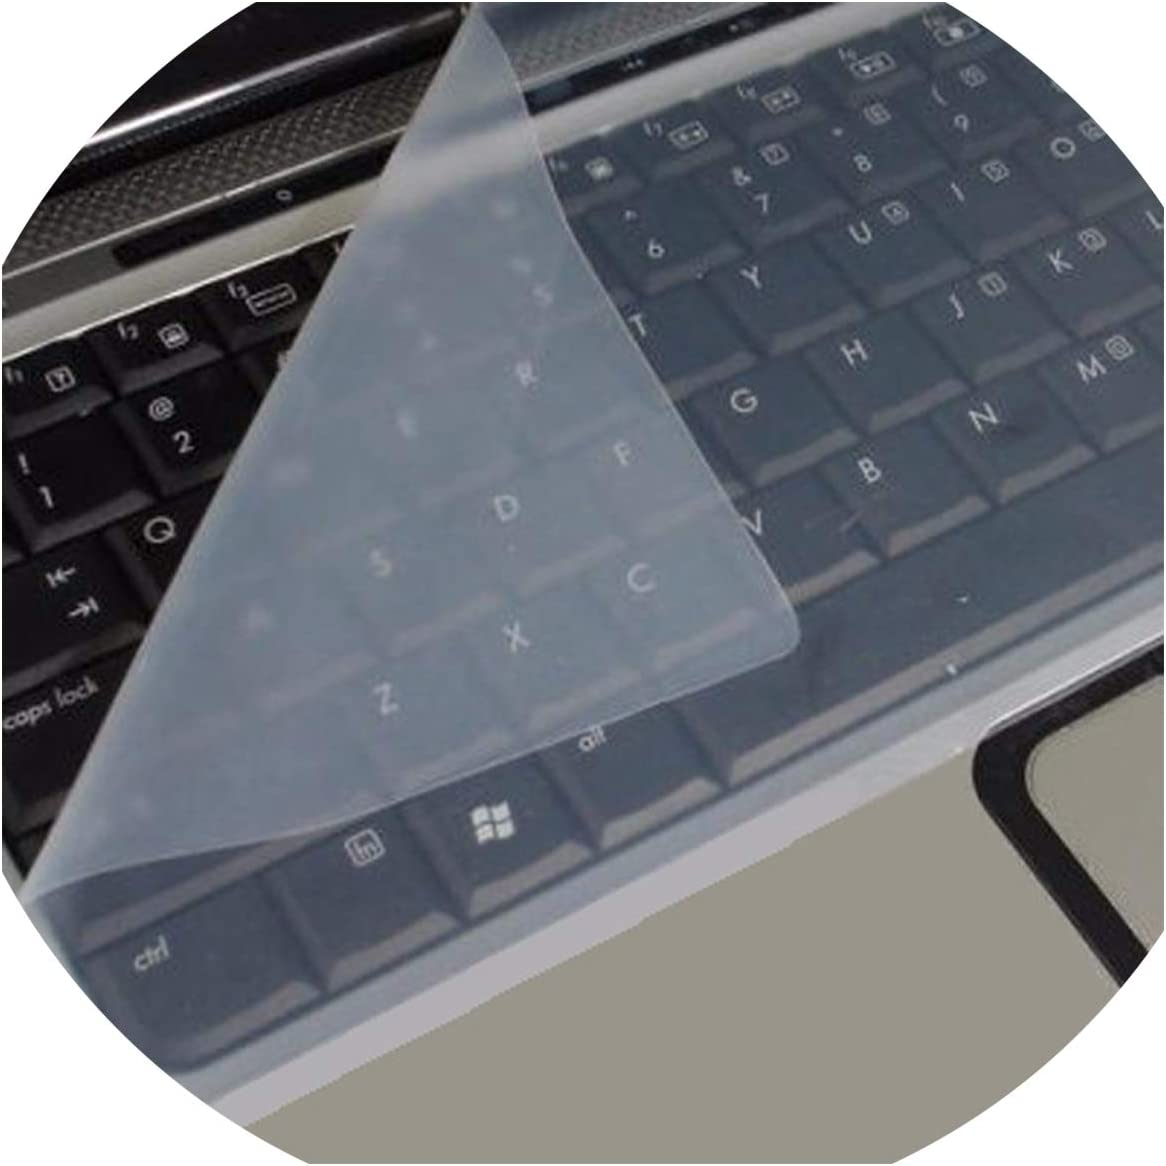 Universal Silicone Keyboard Protector Skin Compatible for Laptops Notebooks Keyboard Protector Cover Skin Guard Compatible for Keyboards